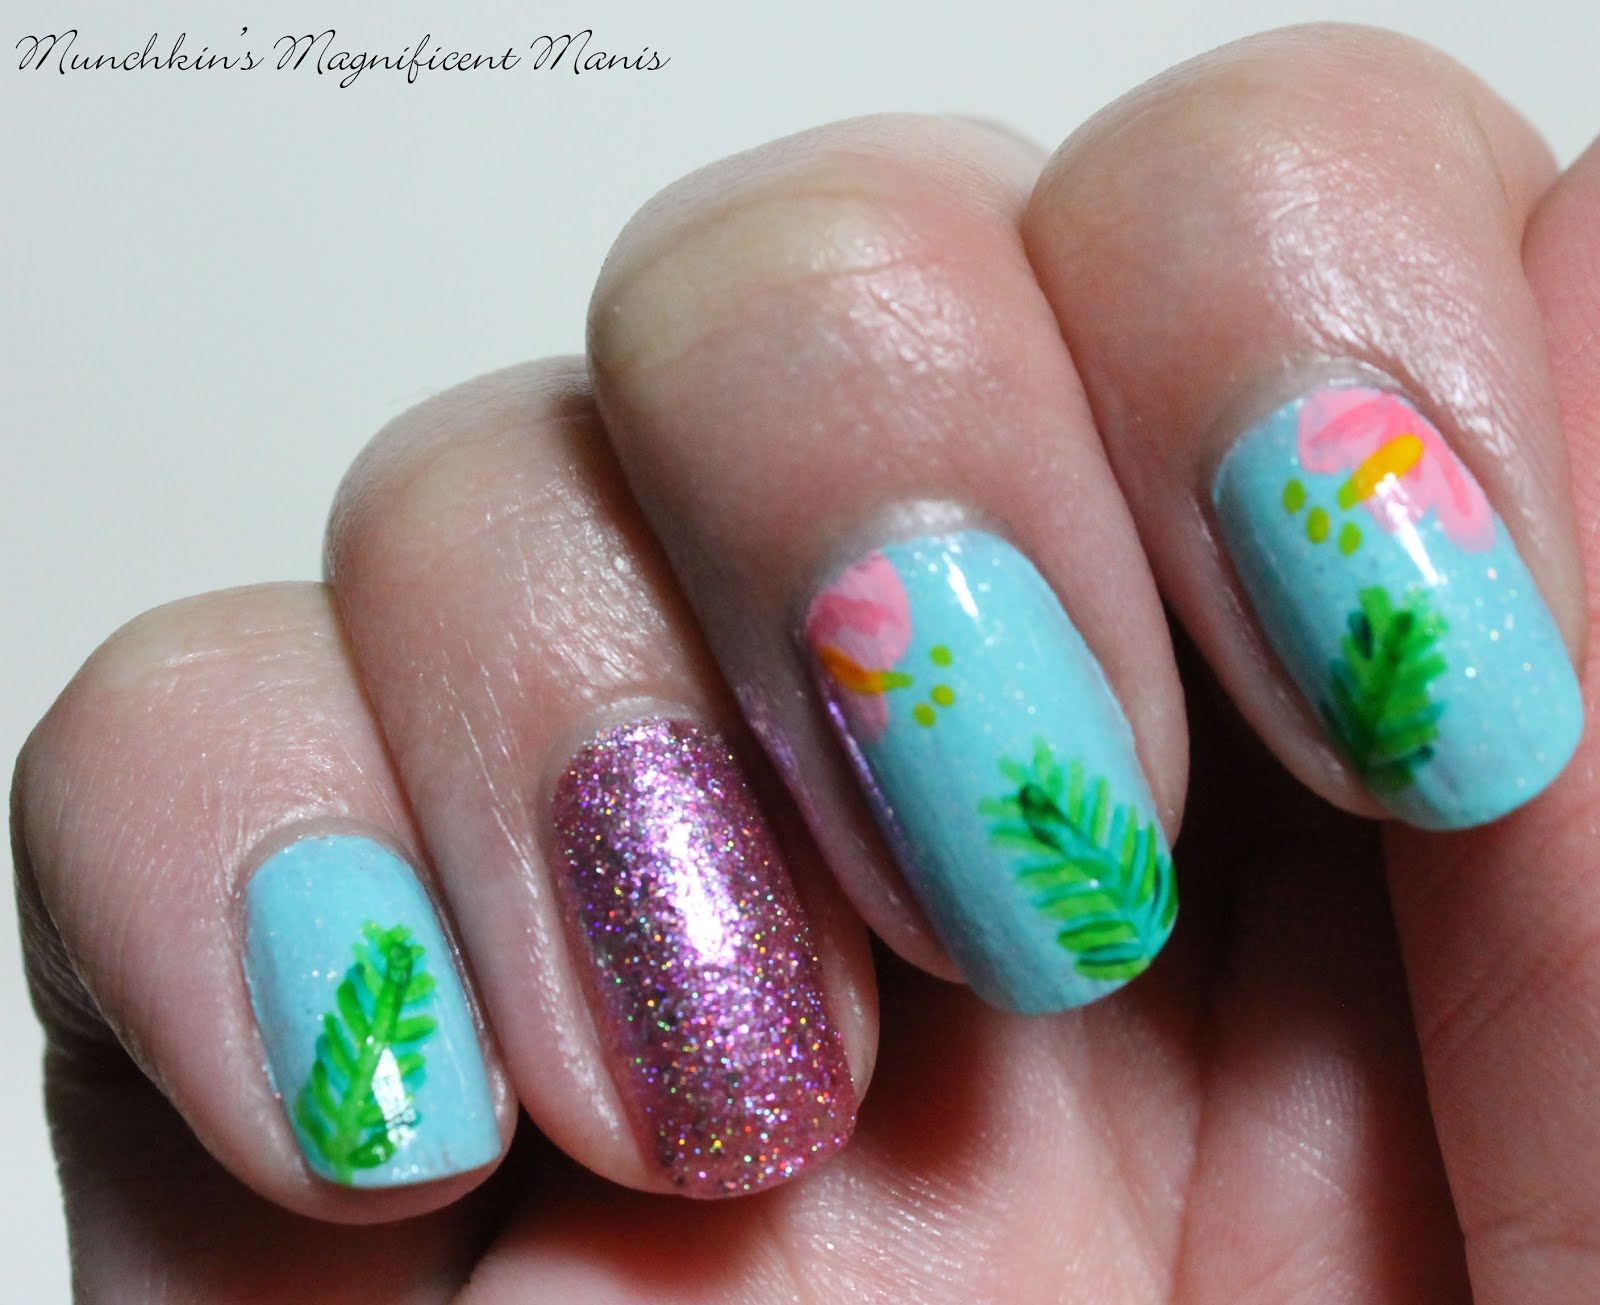 Munchkins Magnificent Manis: Aloha Flowers- Hibiscus ...